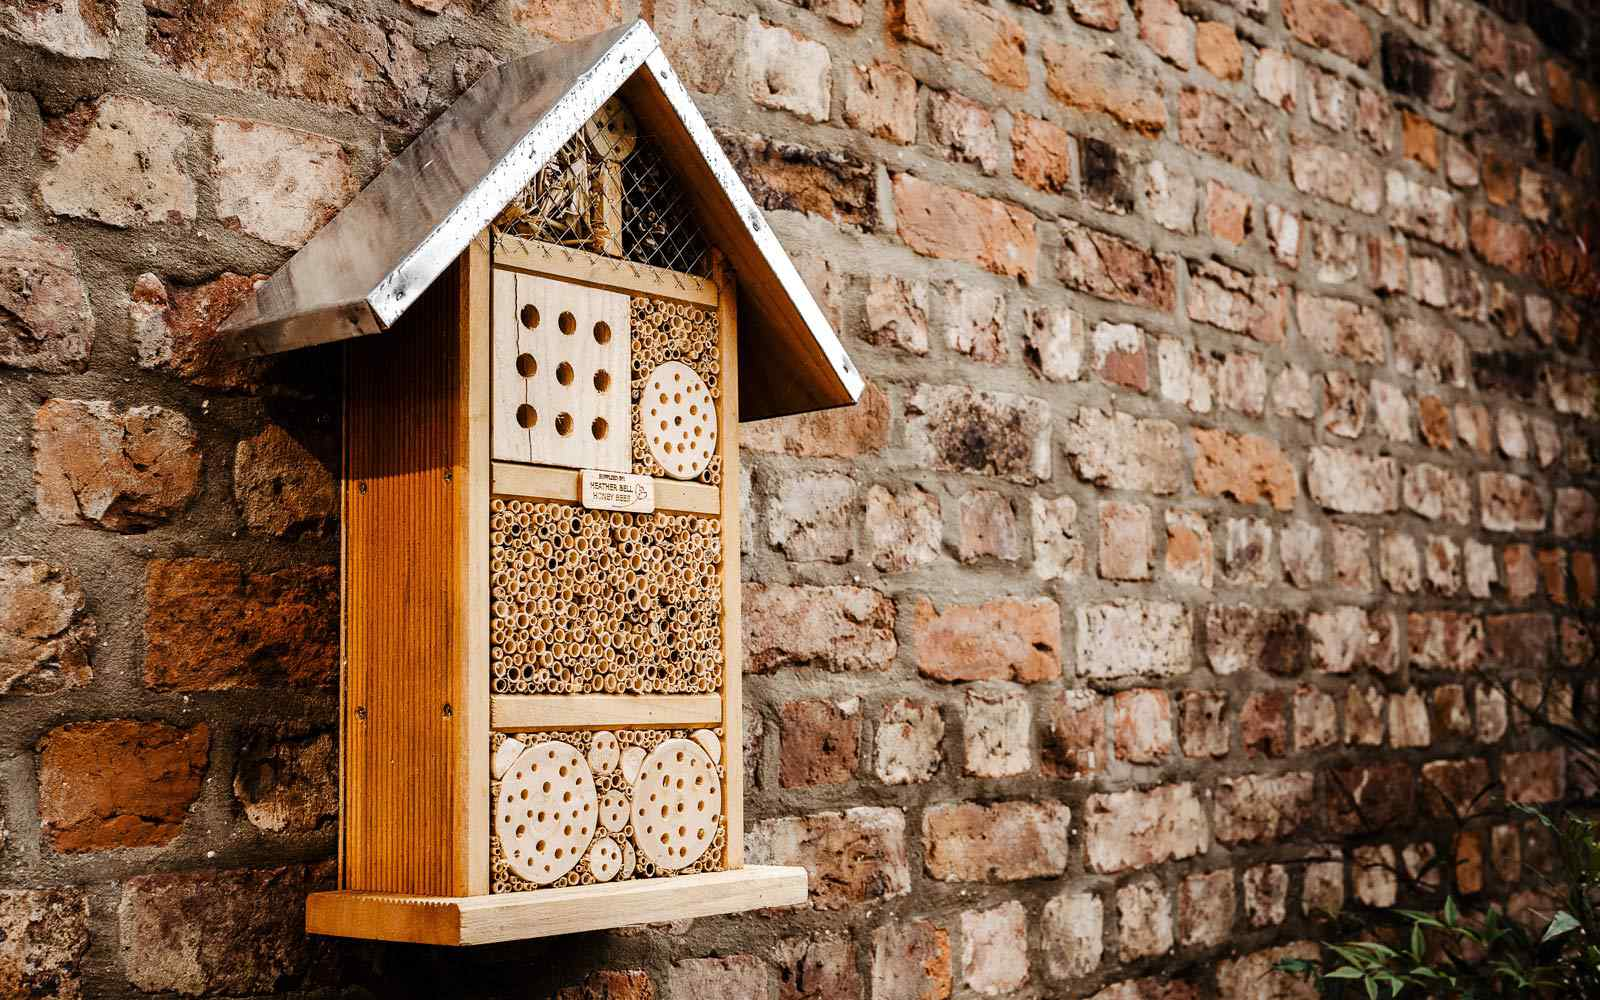 A wooden insect house fixed to a campus wall